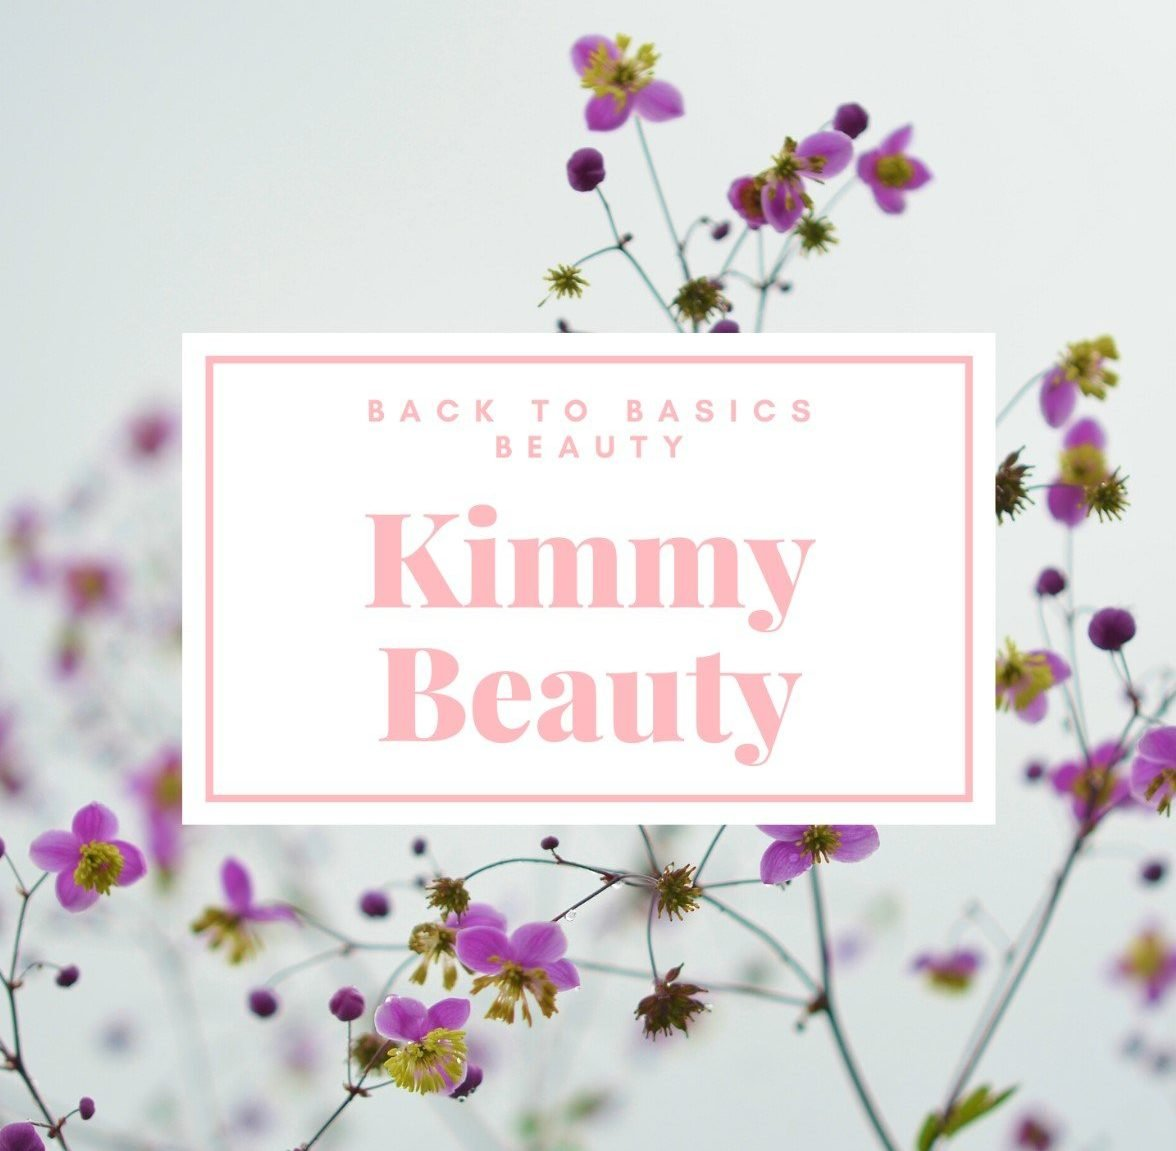 Kimmy Beauty